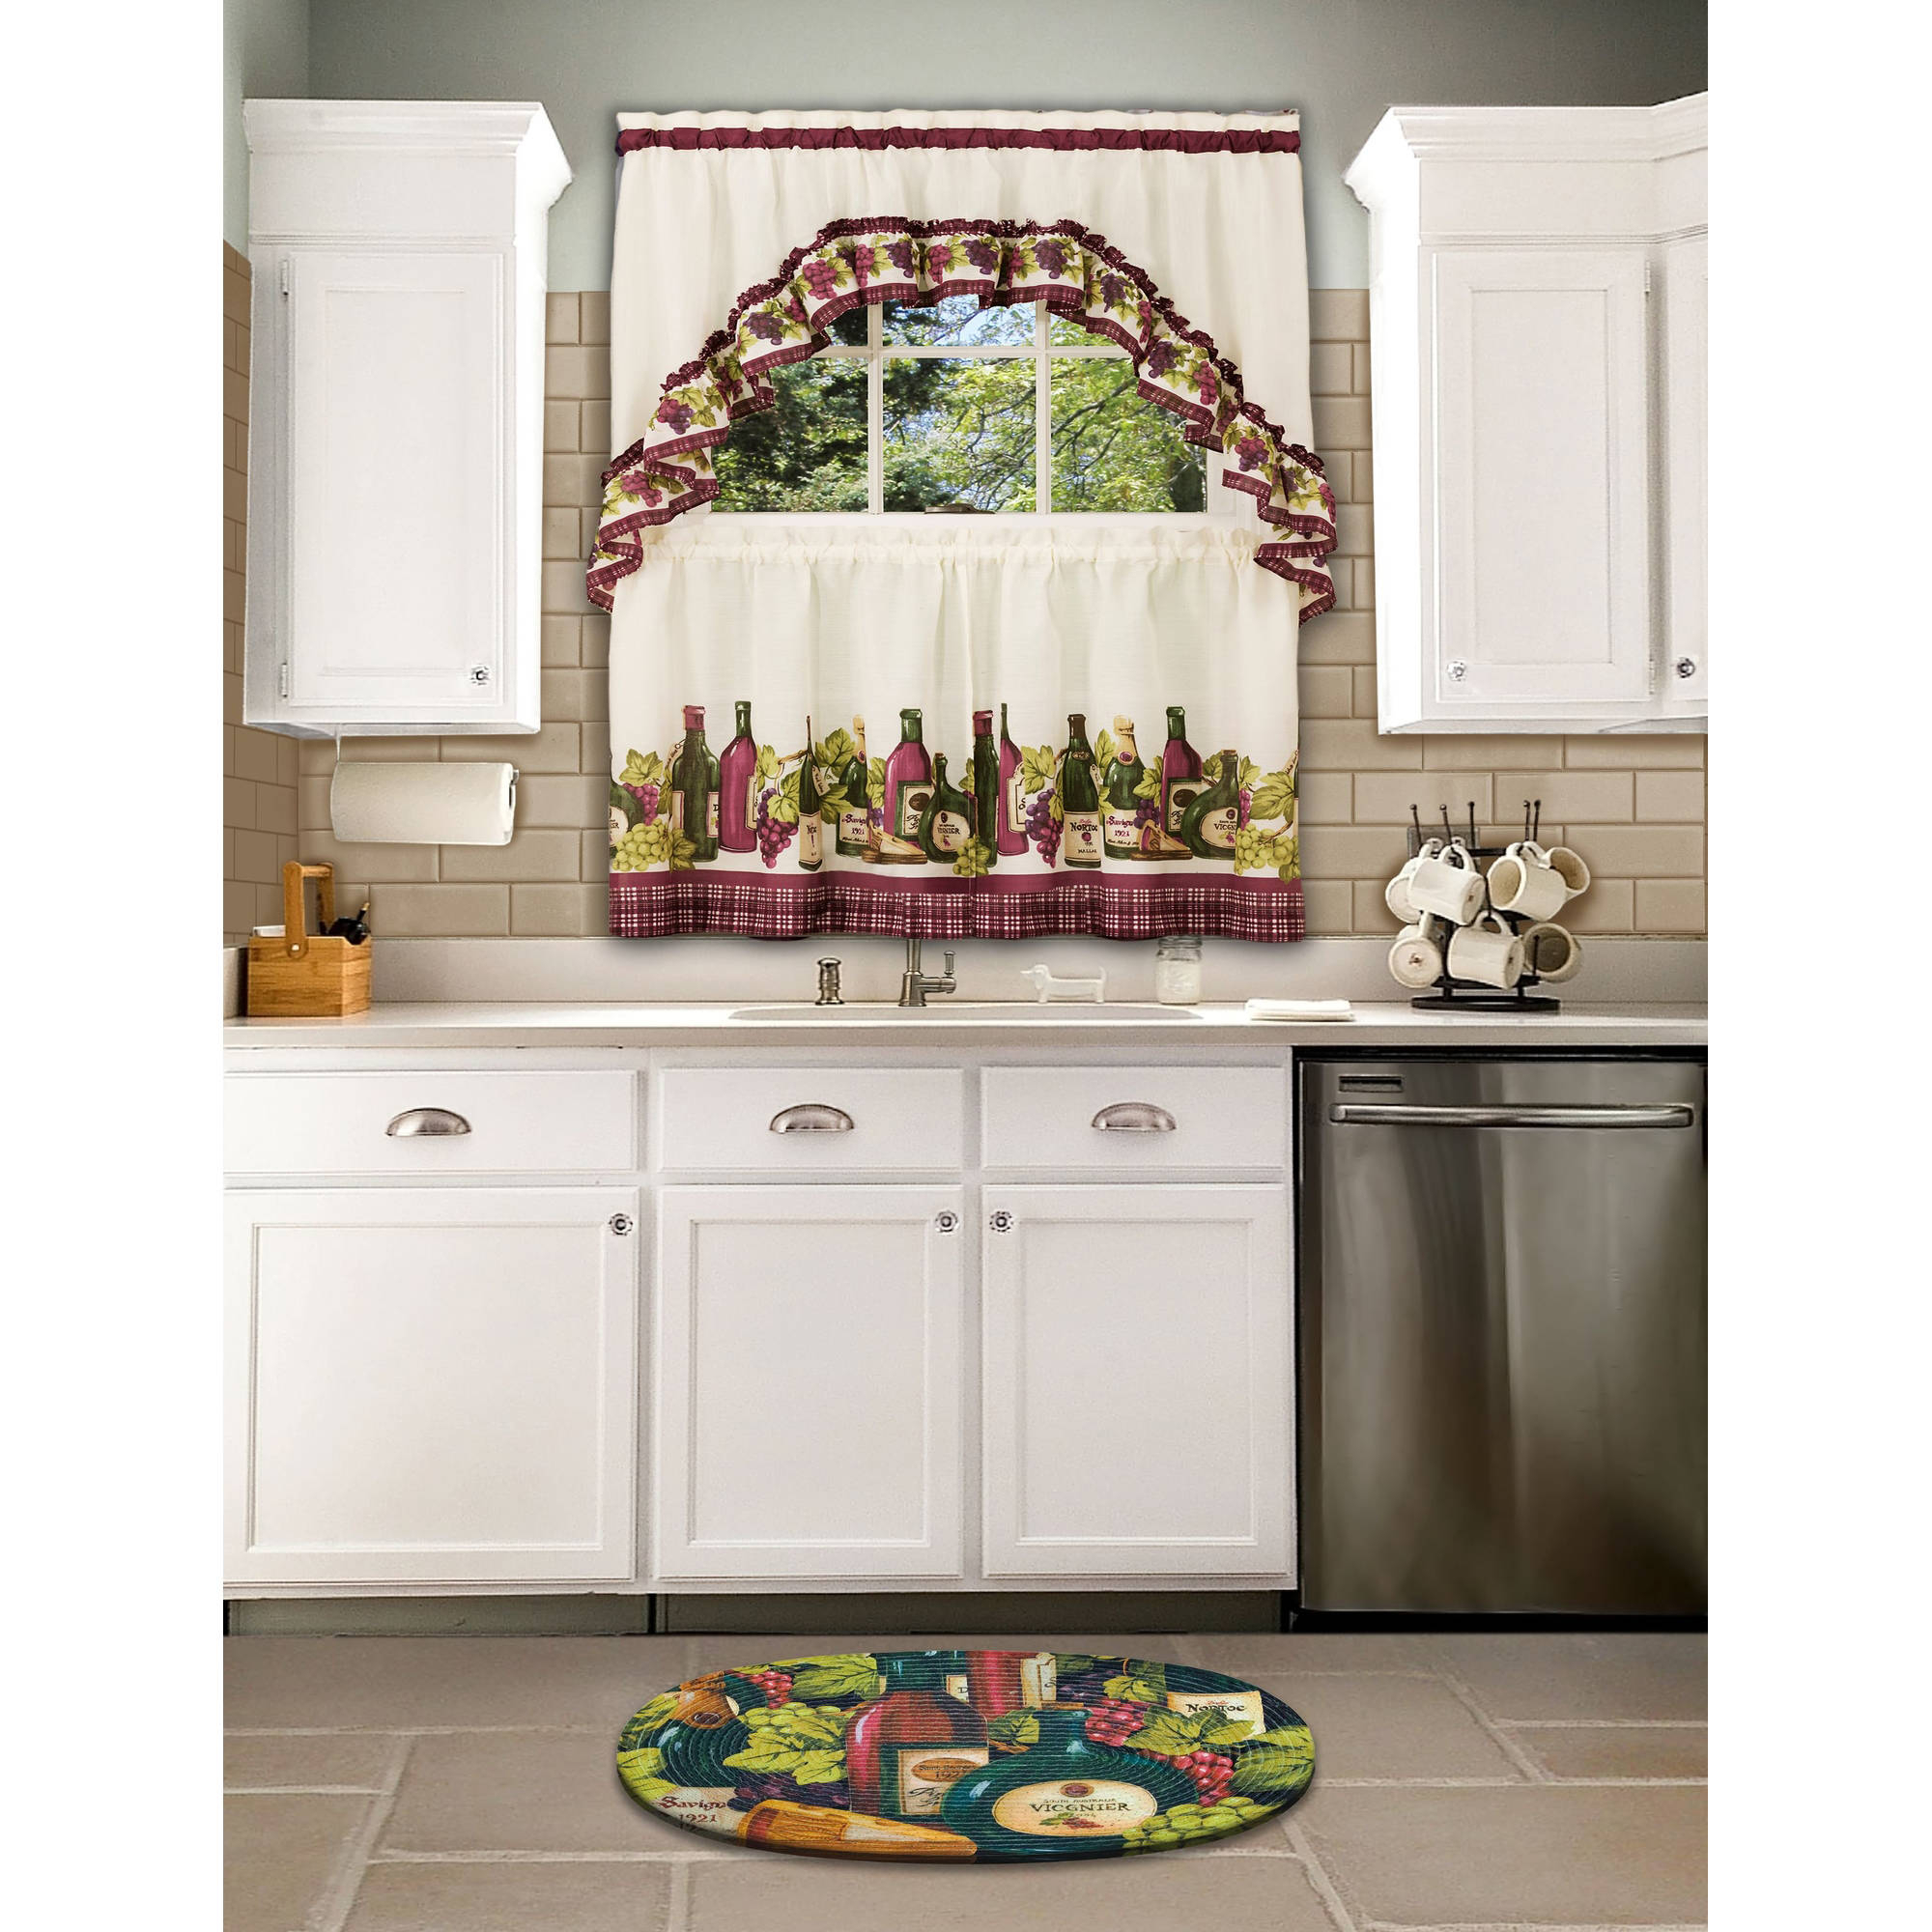 Chardonnay Kitchen Curtain & Swag Set, 1 Each Within Chardonnay Tier And Swag Kitchen Curtain Sets (View 9 of 20)